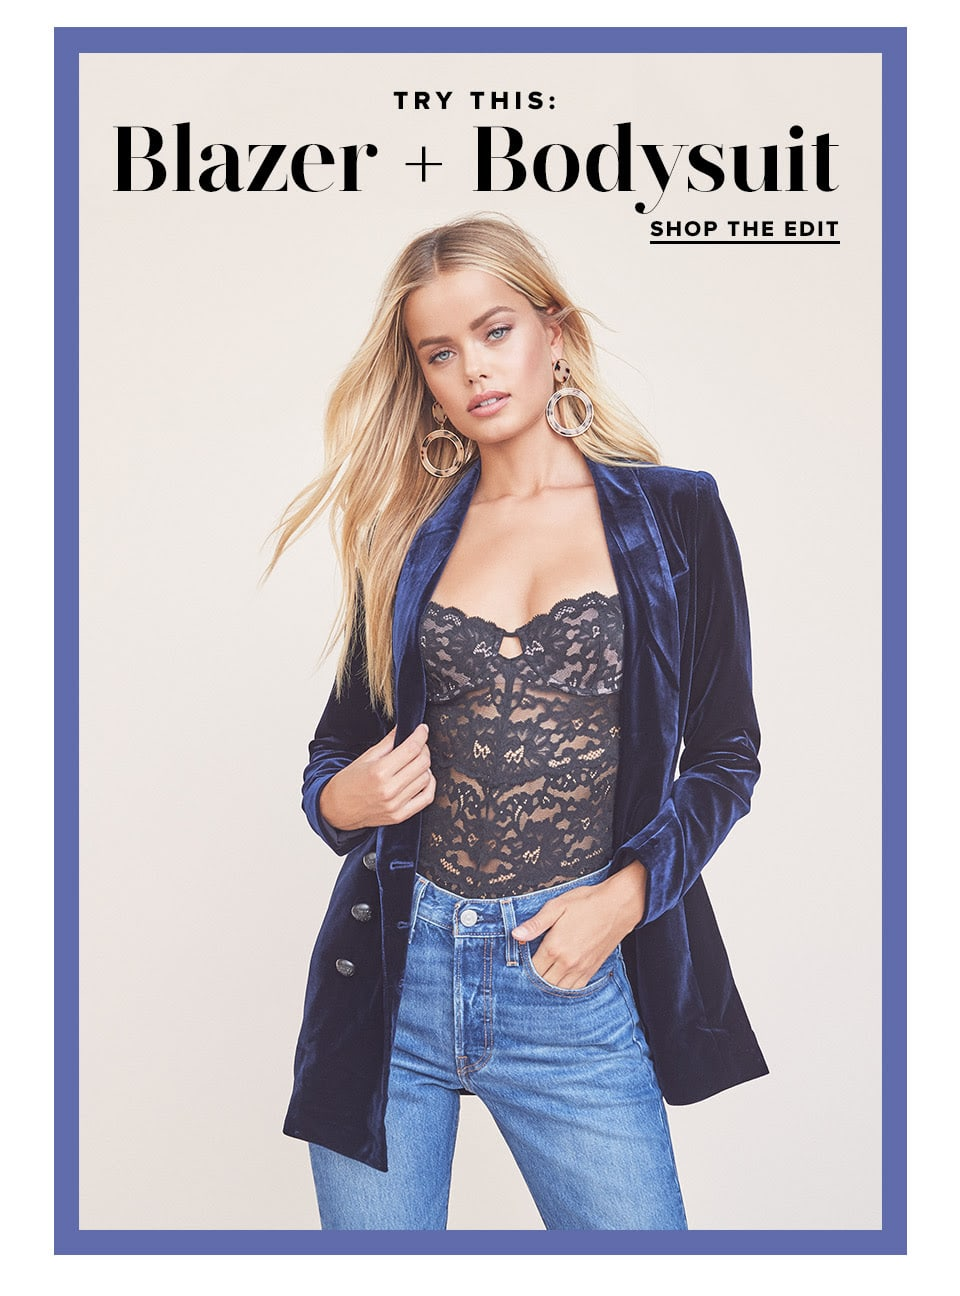 Try This: Blazer + Bodysuit. Take your chic level up a notch this fall by pairing the season's must-have blazer with a sexy bodysuit. Shop the Edit.